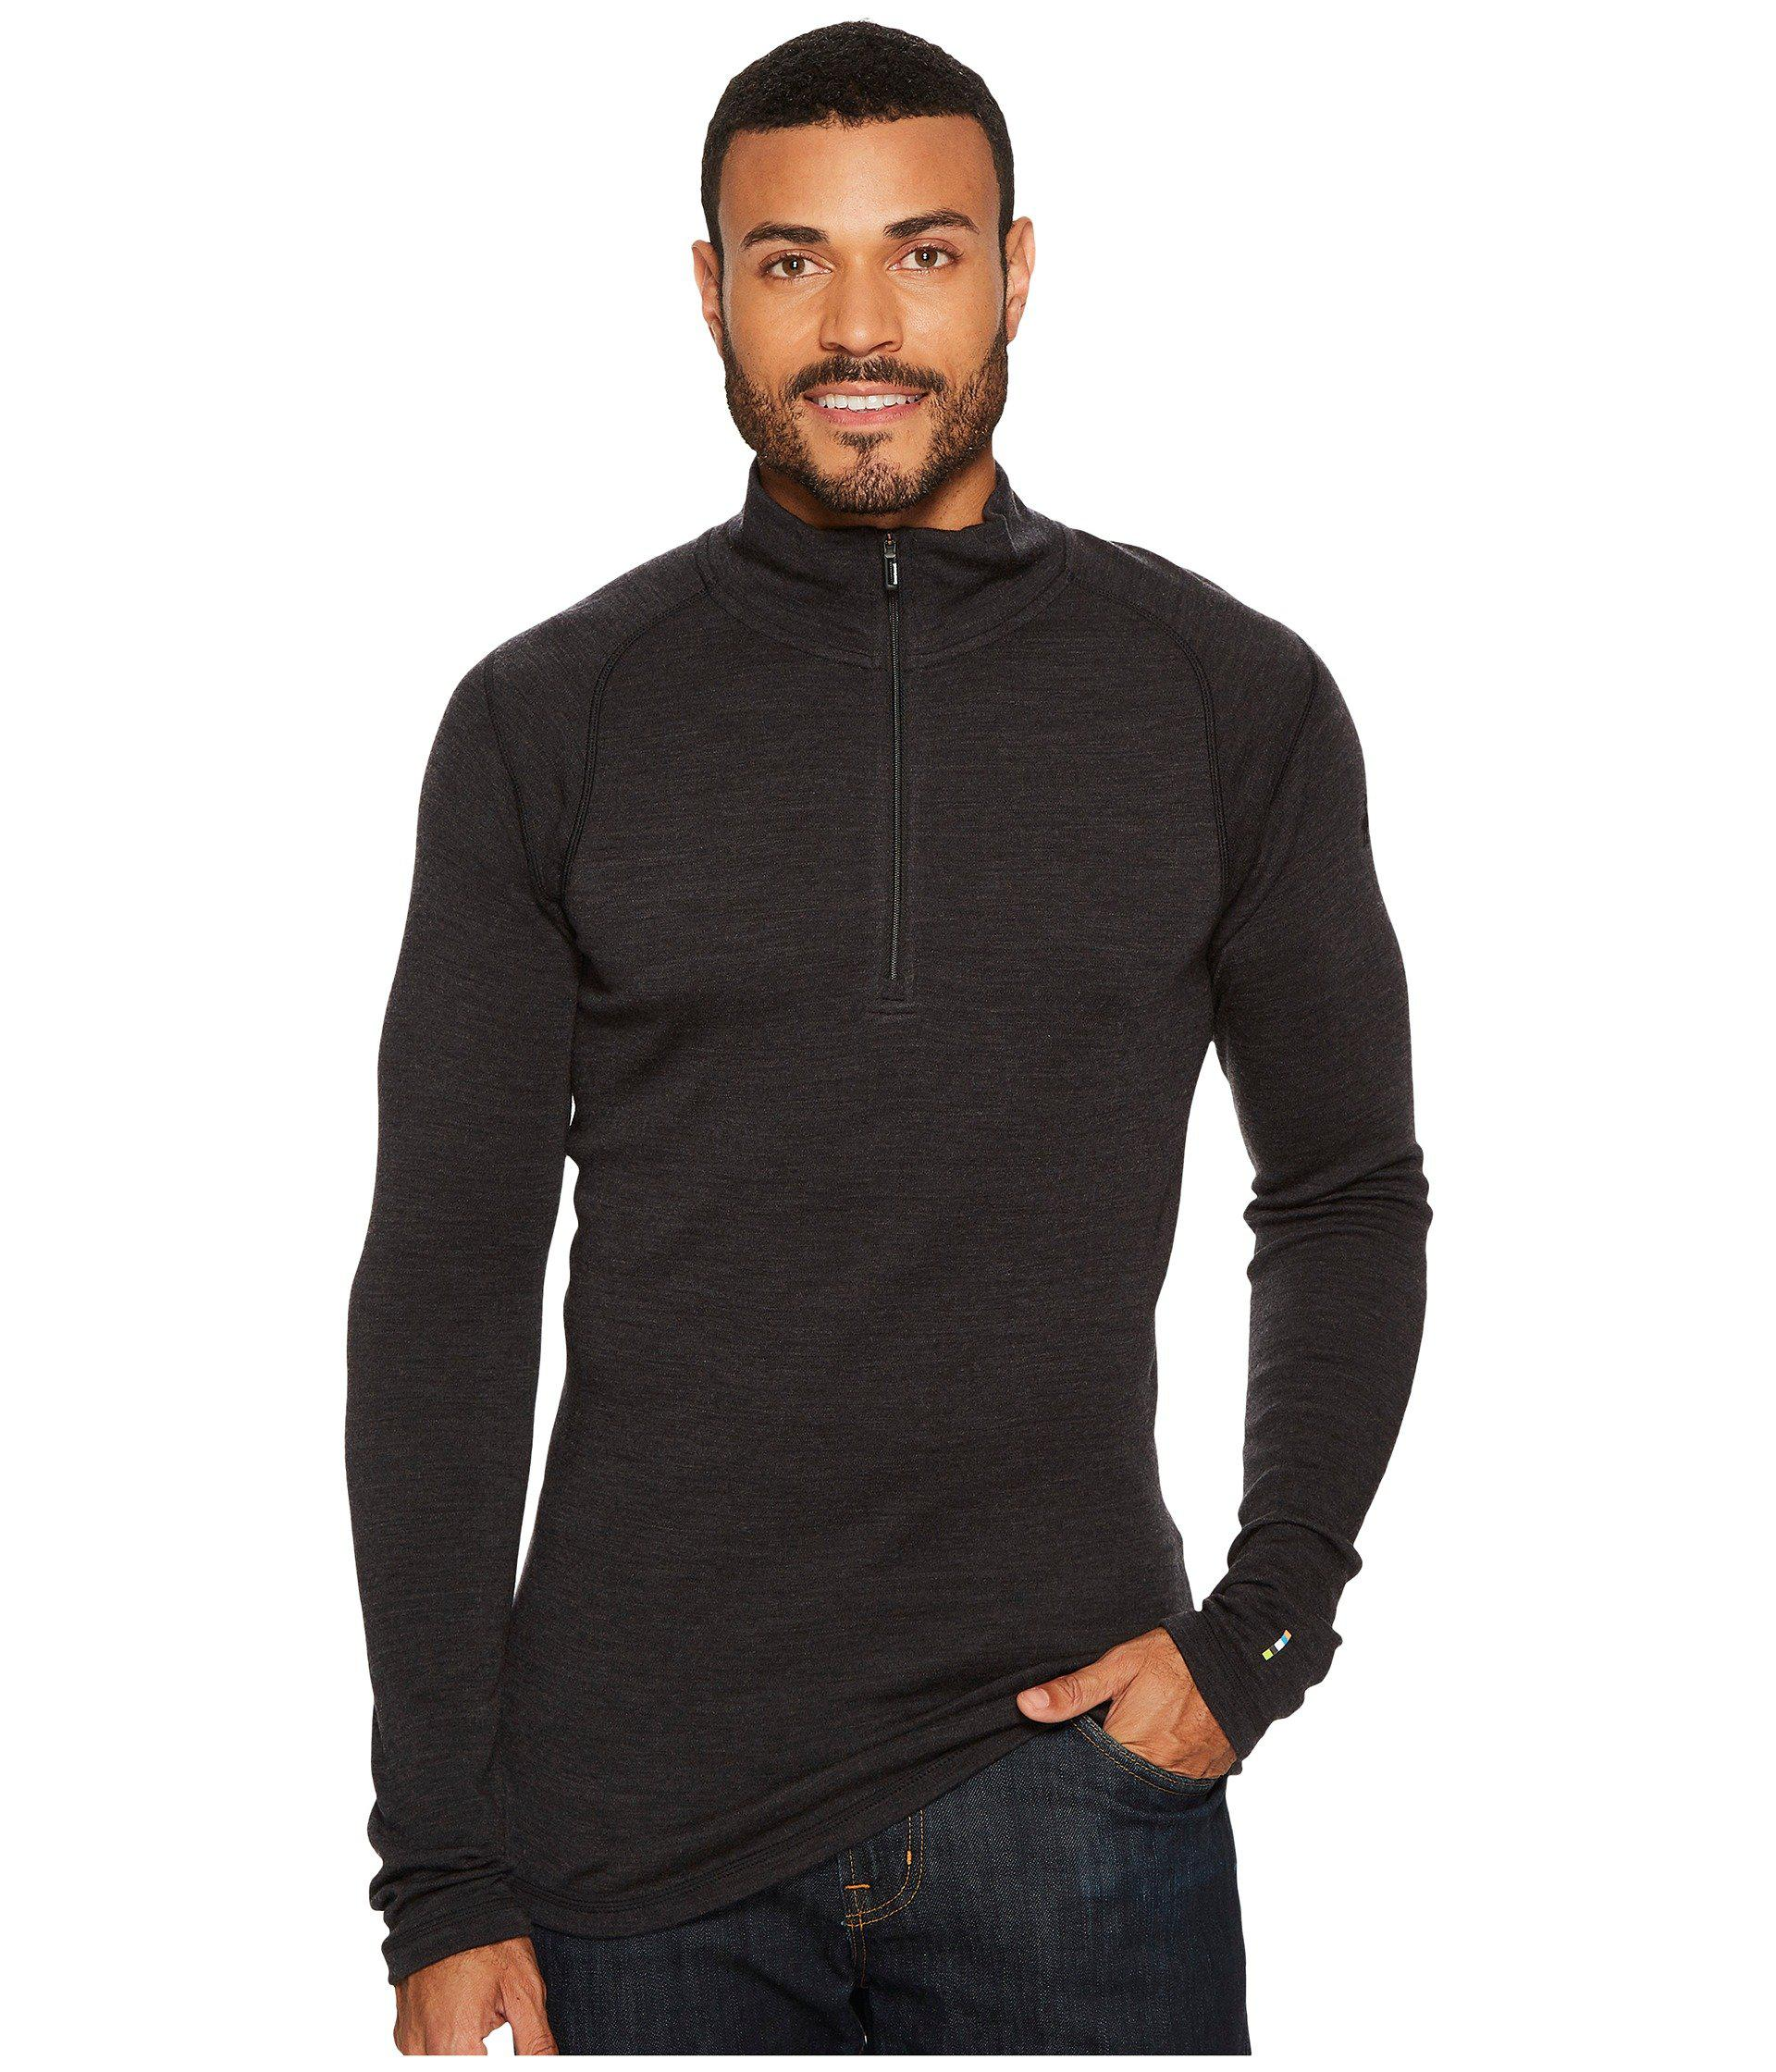 103f5a44a768 Lyst - Smartwool Nts Mid 250 Zip T Top (charcoal) Men s Long Sleeve ...